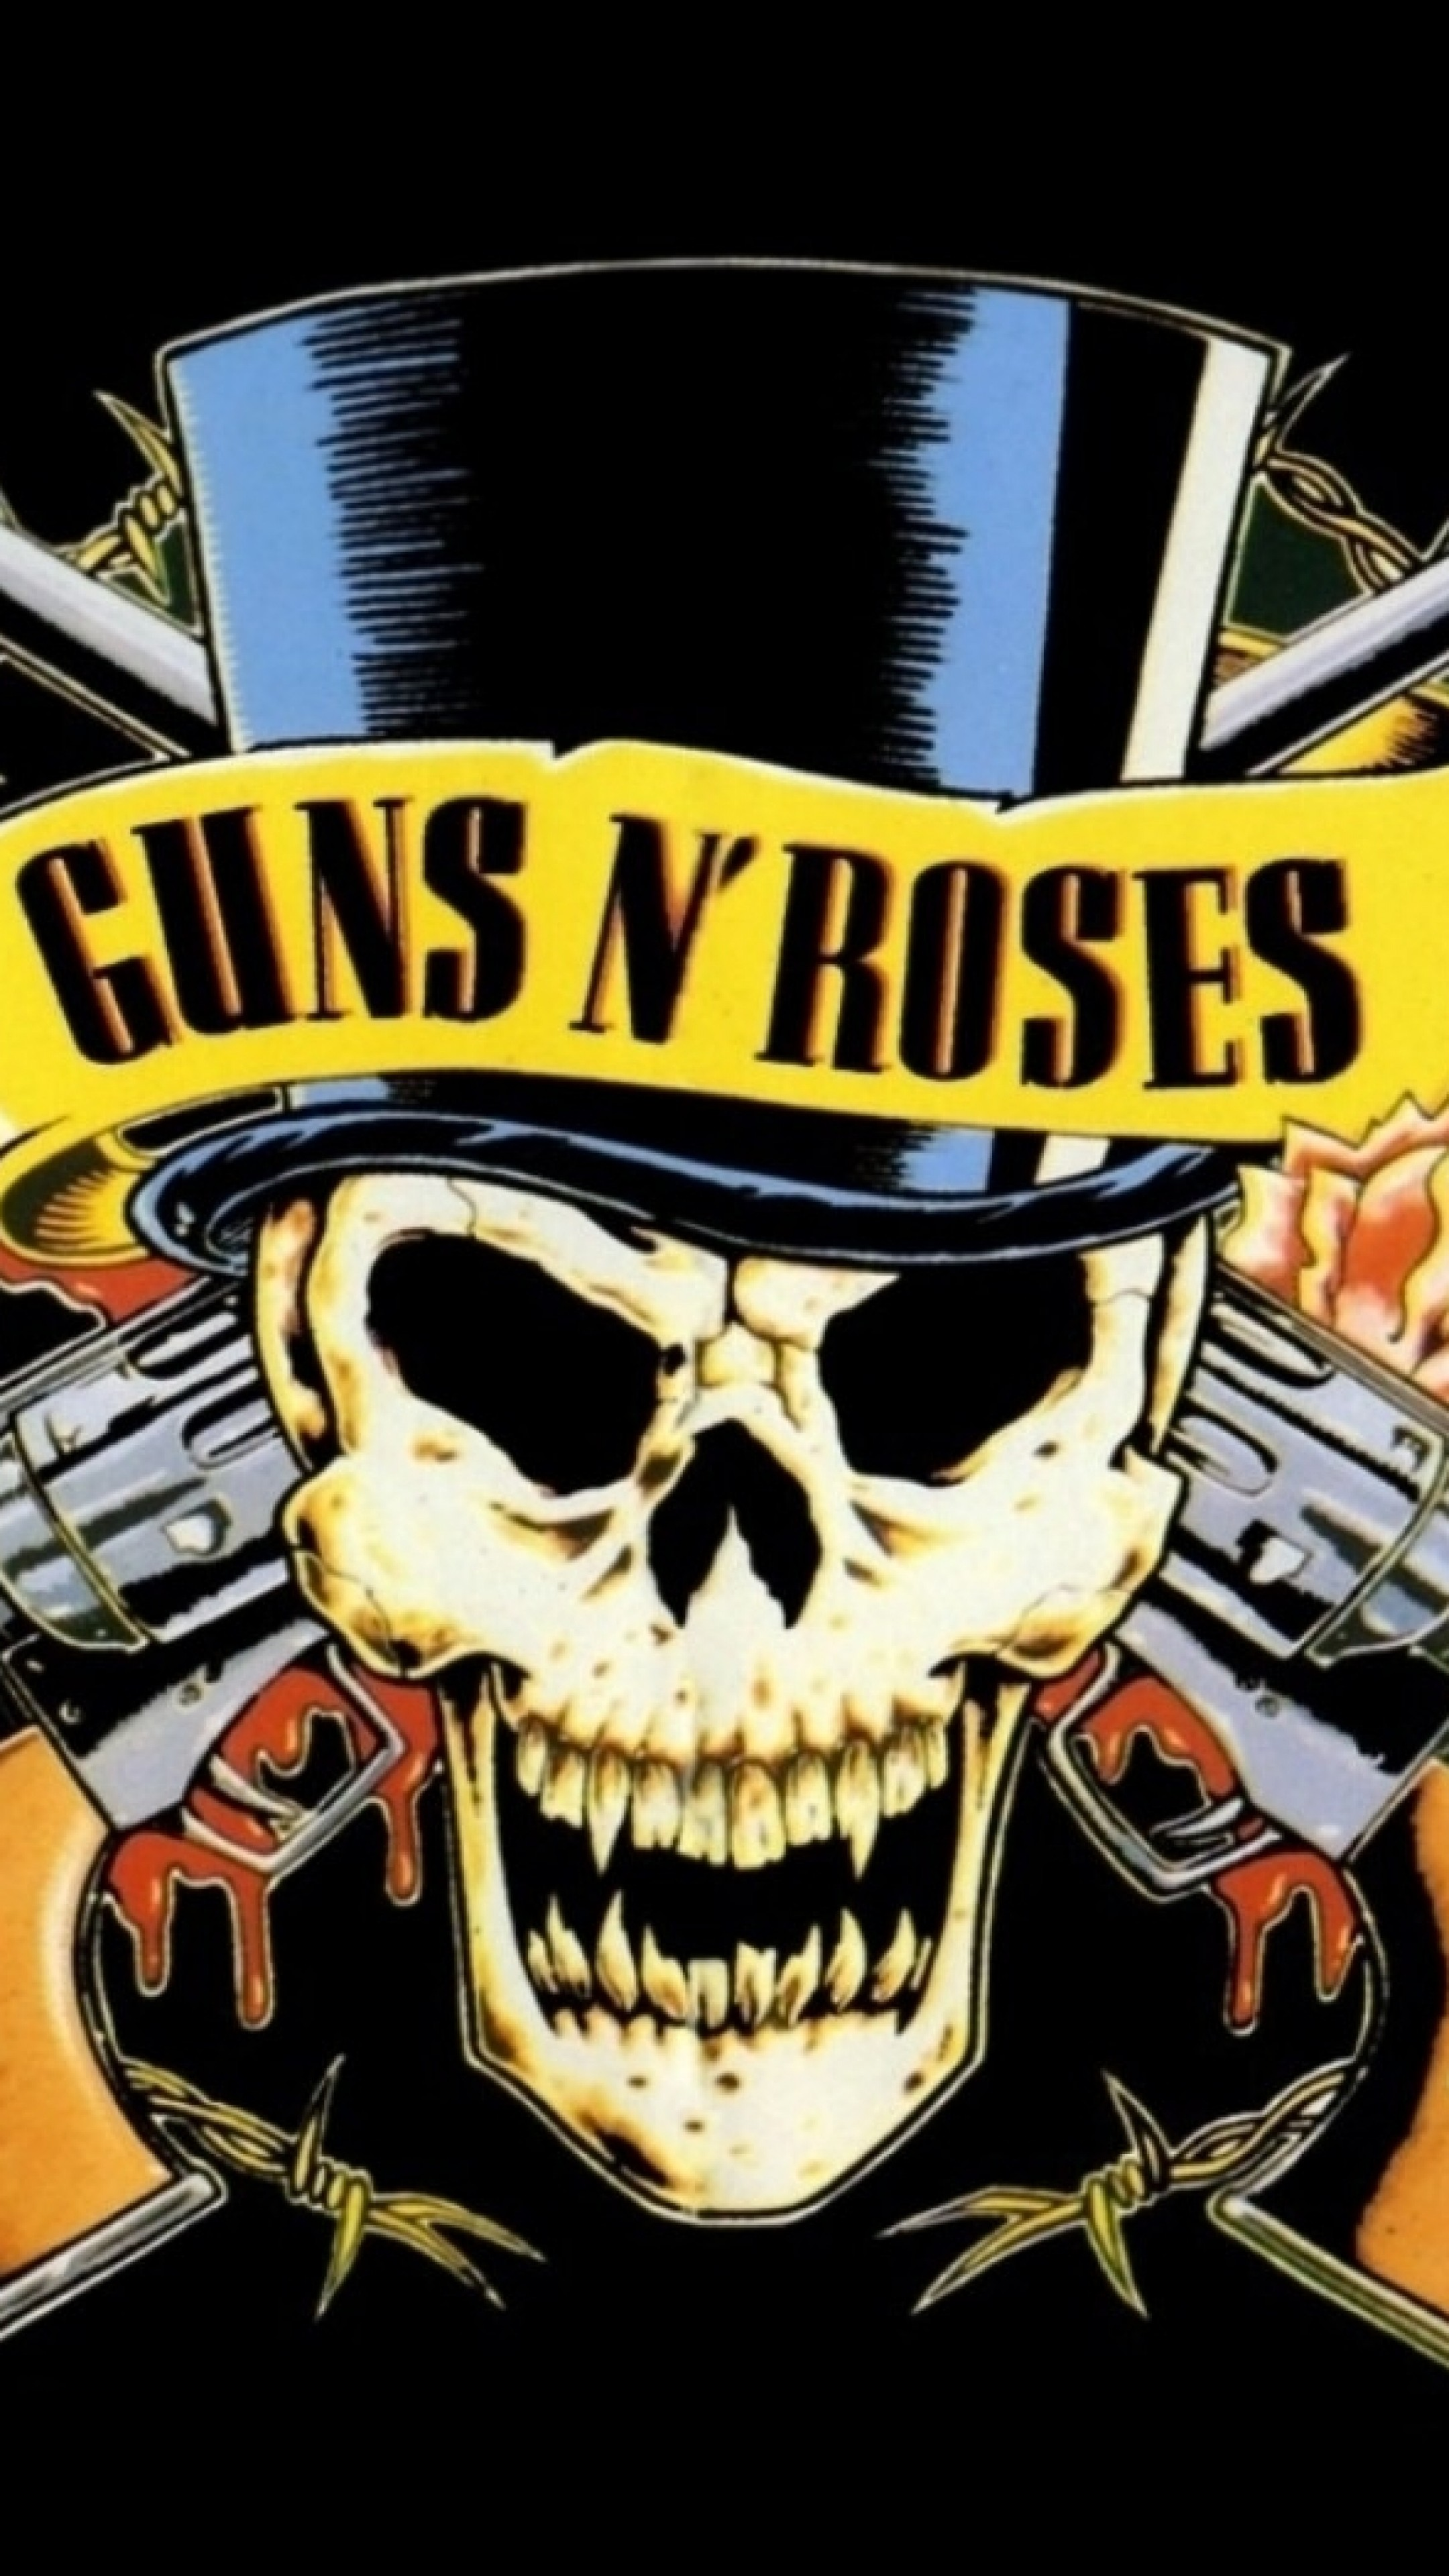 Preview Wallpaper Guns N Roses Revolvers Skull Cylinder